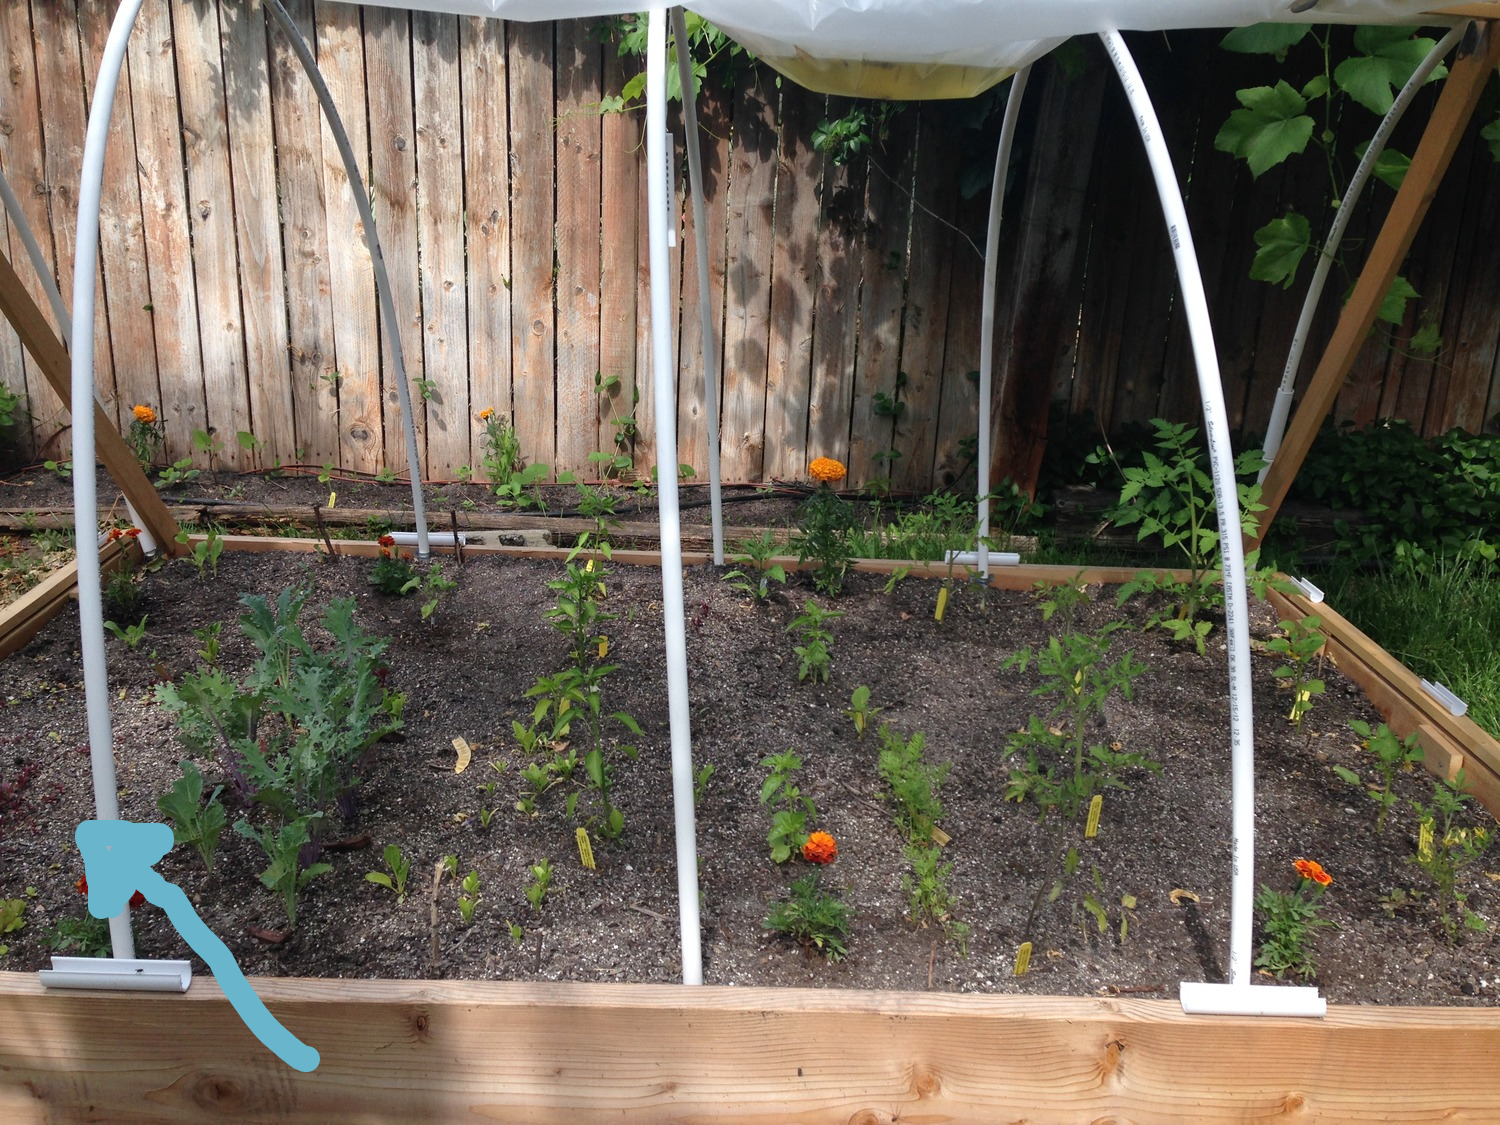 see that sad lettuce on the left that was planted 2 months earlier...